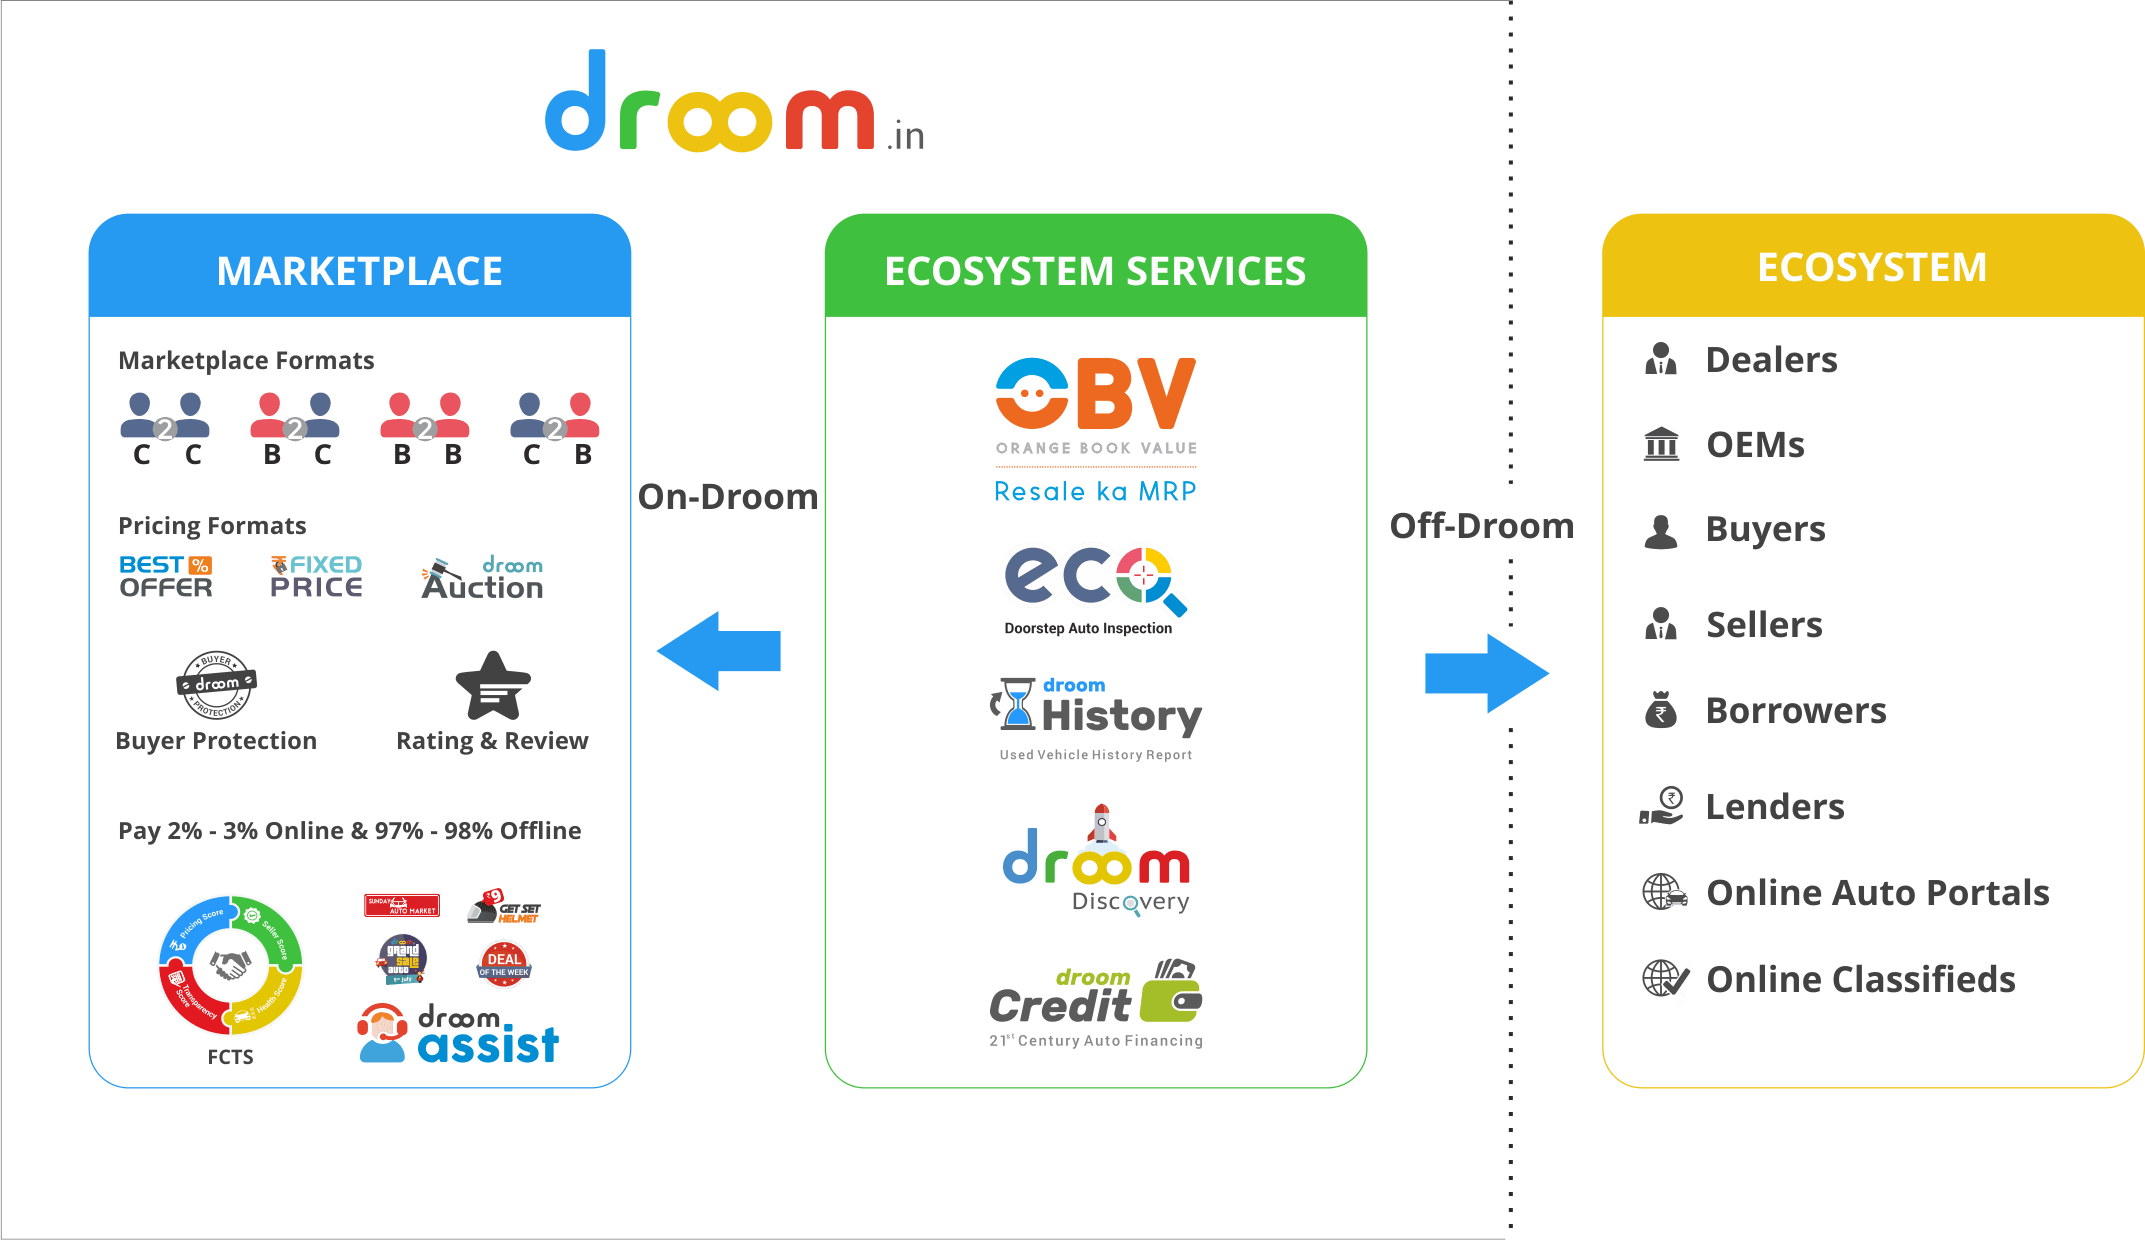 Droom Overview